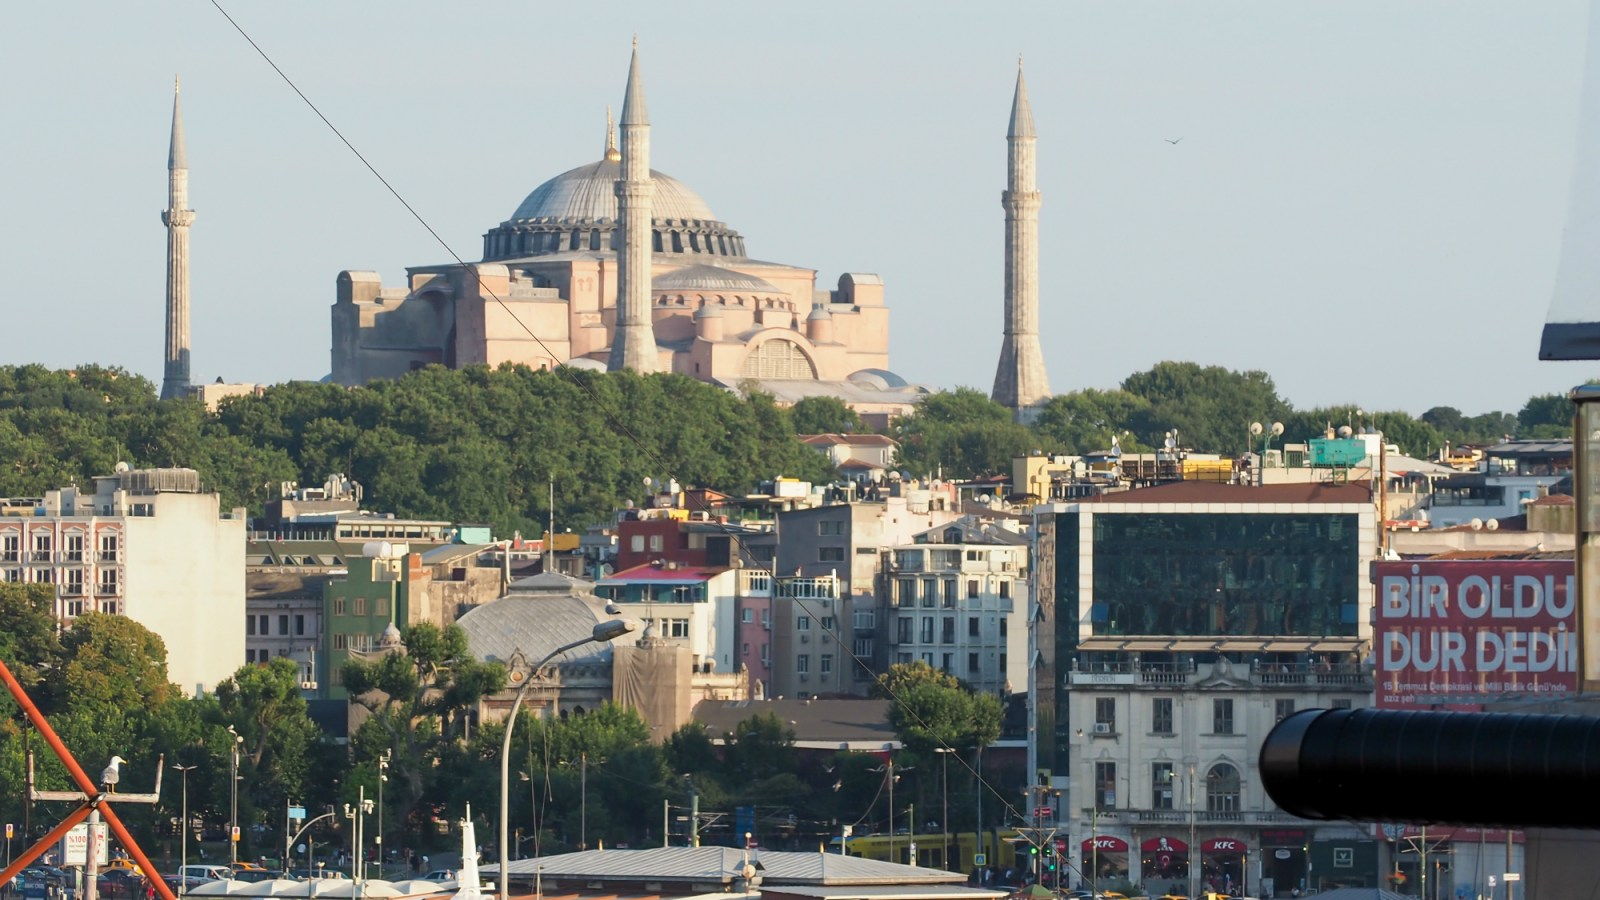 Where to Stay in Istanbul, Turkey: Hotel Momento Golden Horn in Beyoglu / Karakoy. View of Hagia Sophia from my room. #istanbul #turkey #goldenhorn #wheretostay #hotelreview #hotelmomento #traveltips #hagiasophia #ayasofya